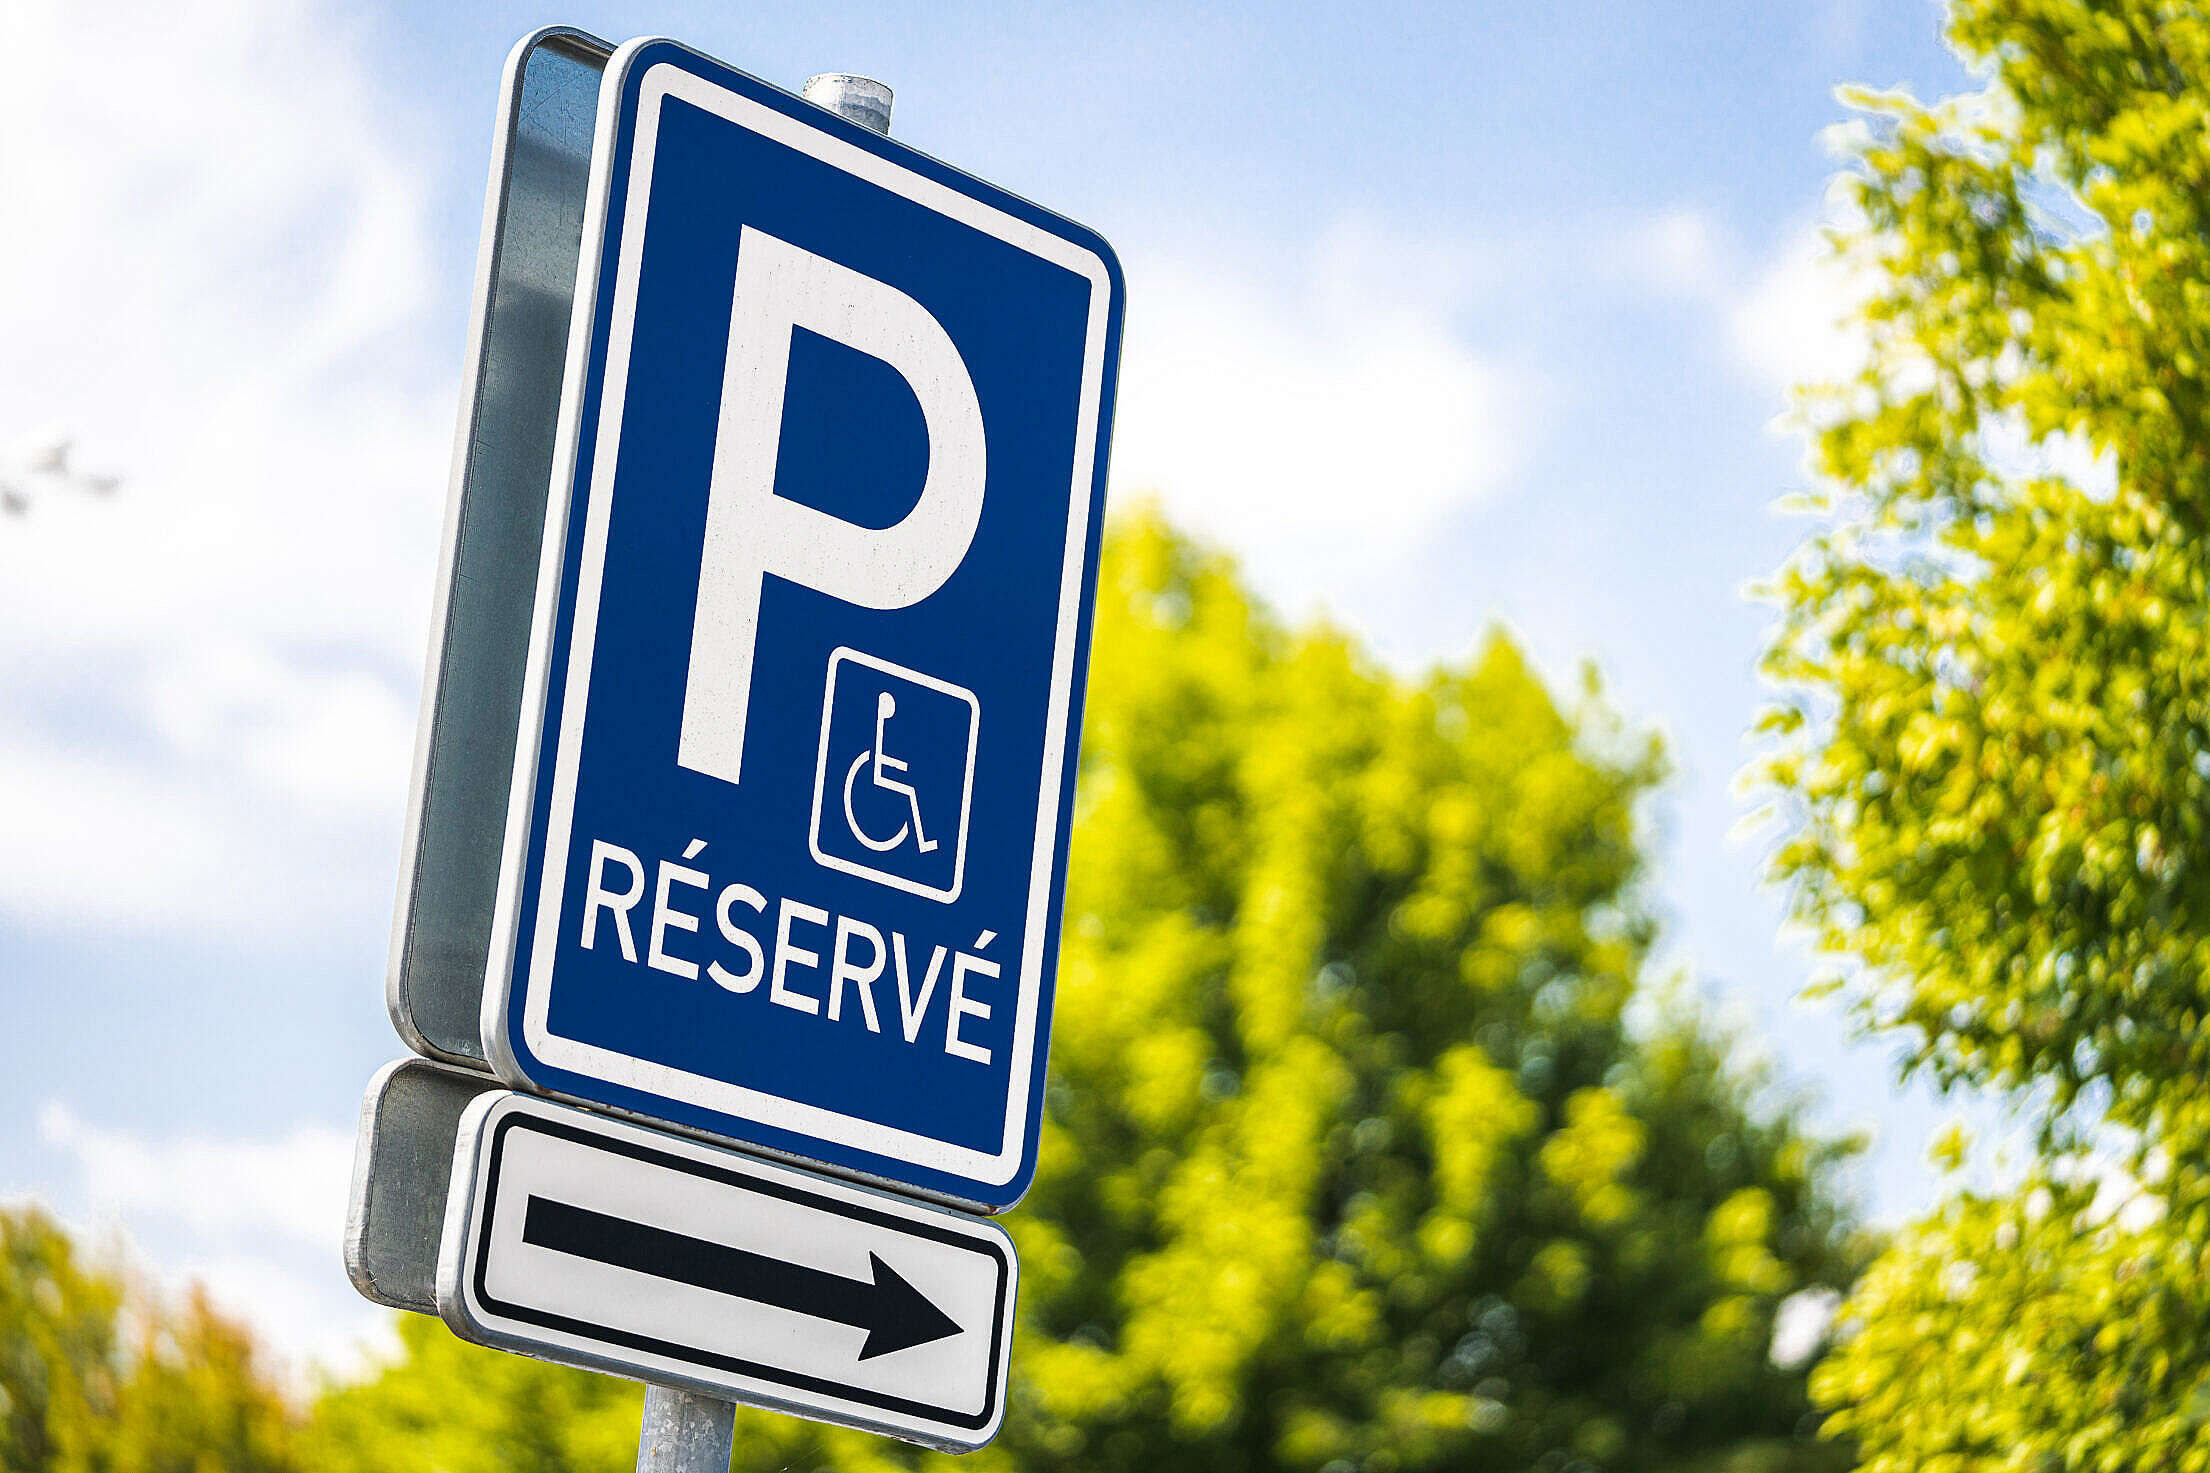 Reserved Parking Space for Handicapped Free Stock Photo